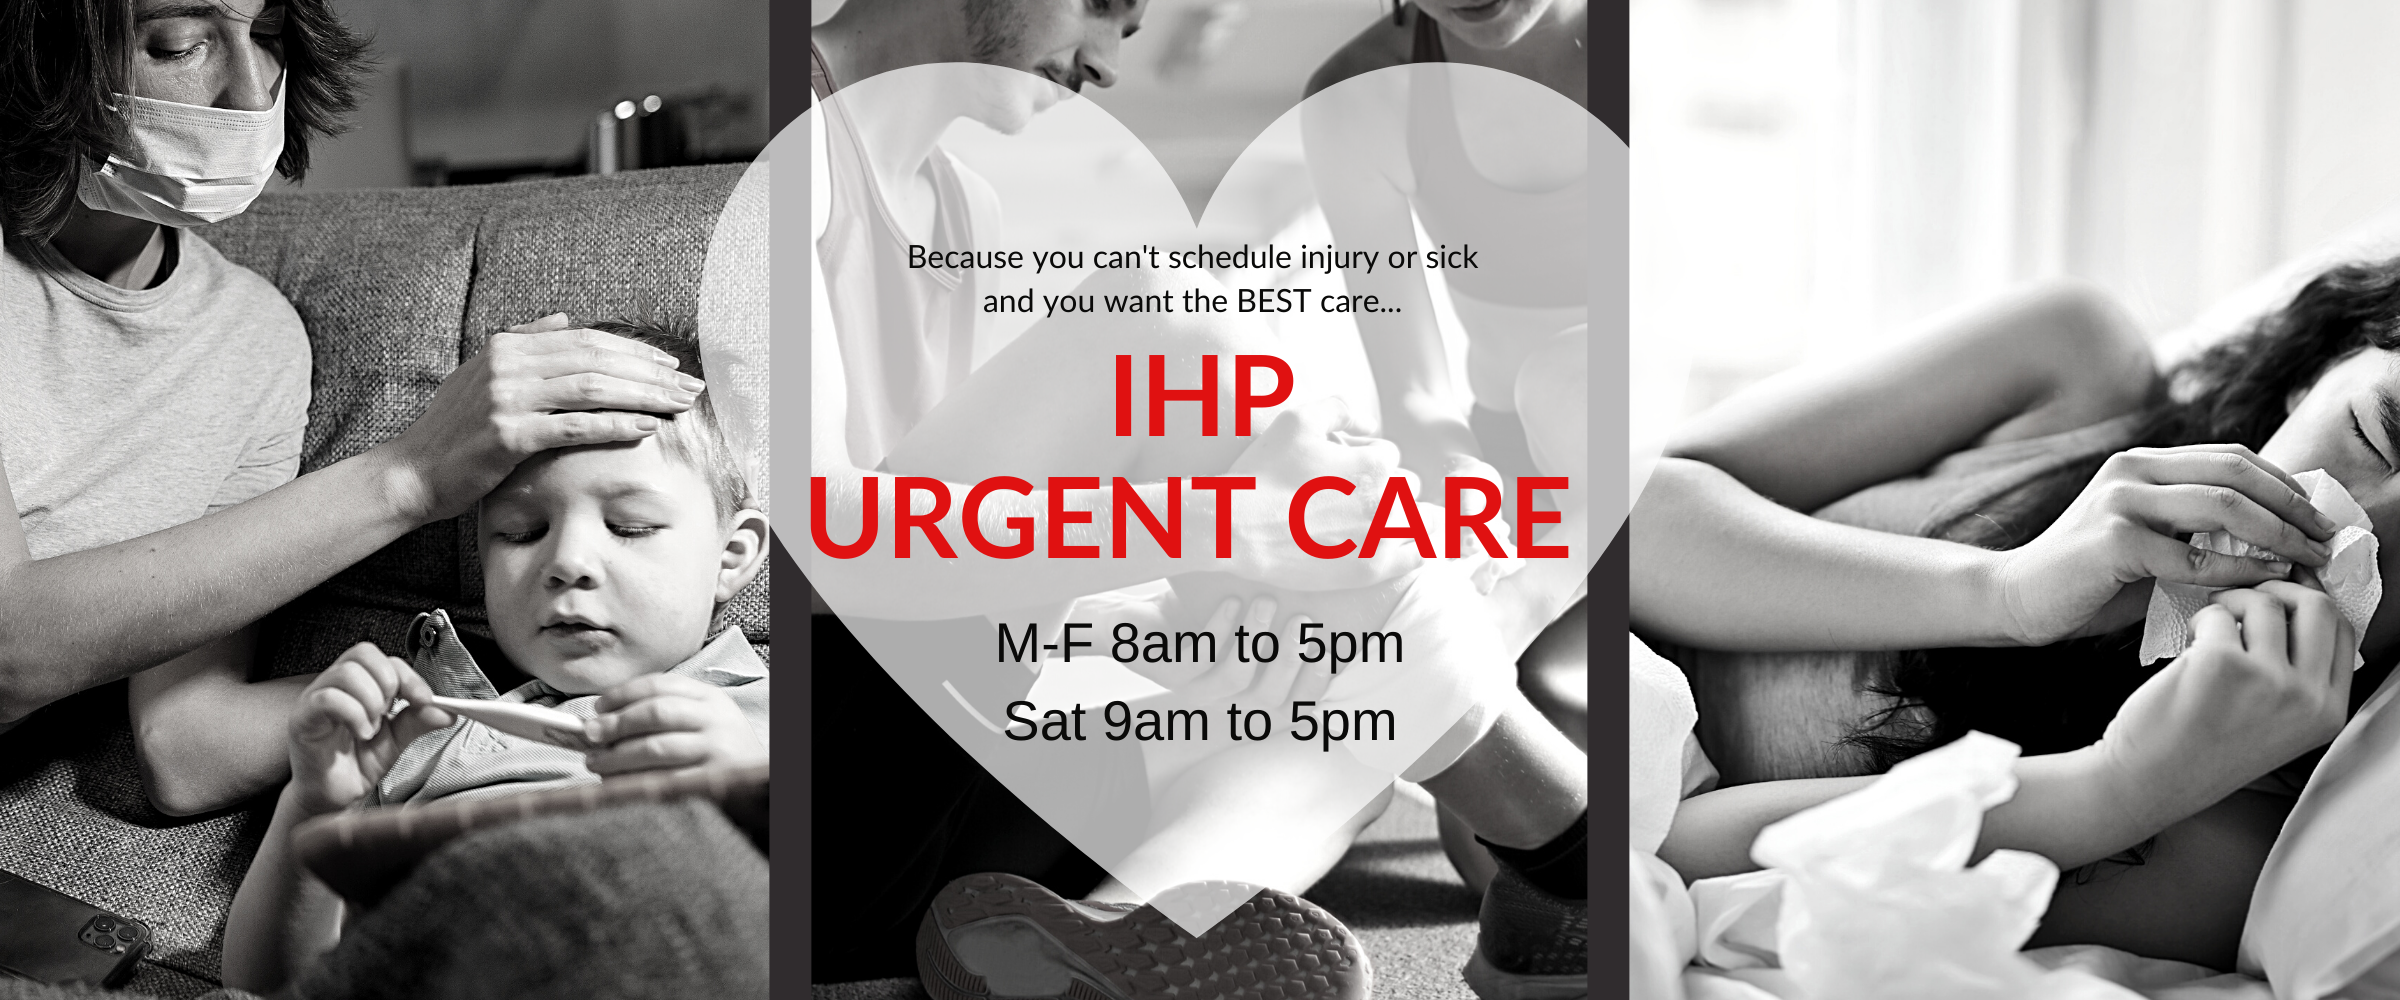 IHP Urgent Care for Guam (1).png